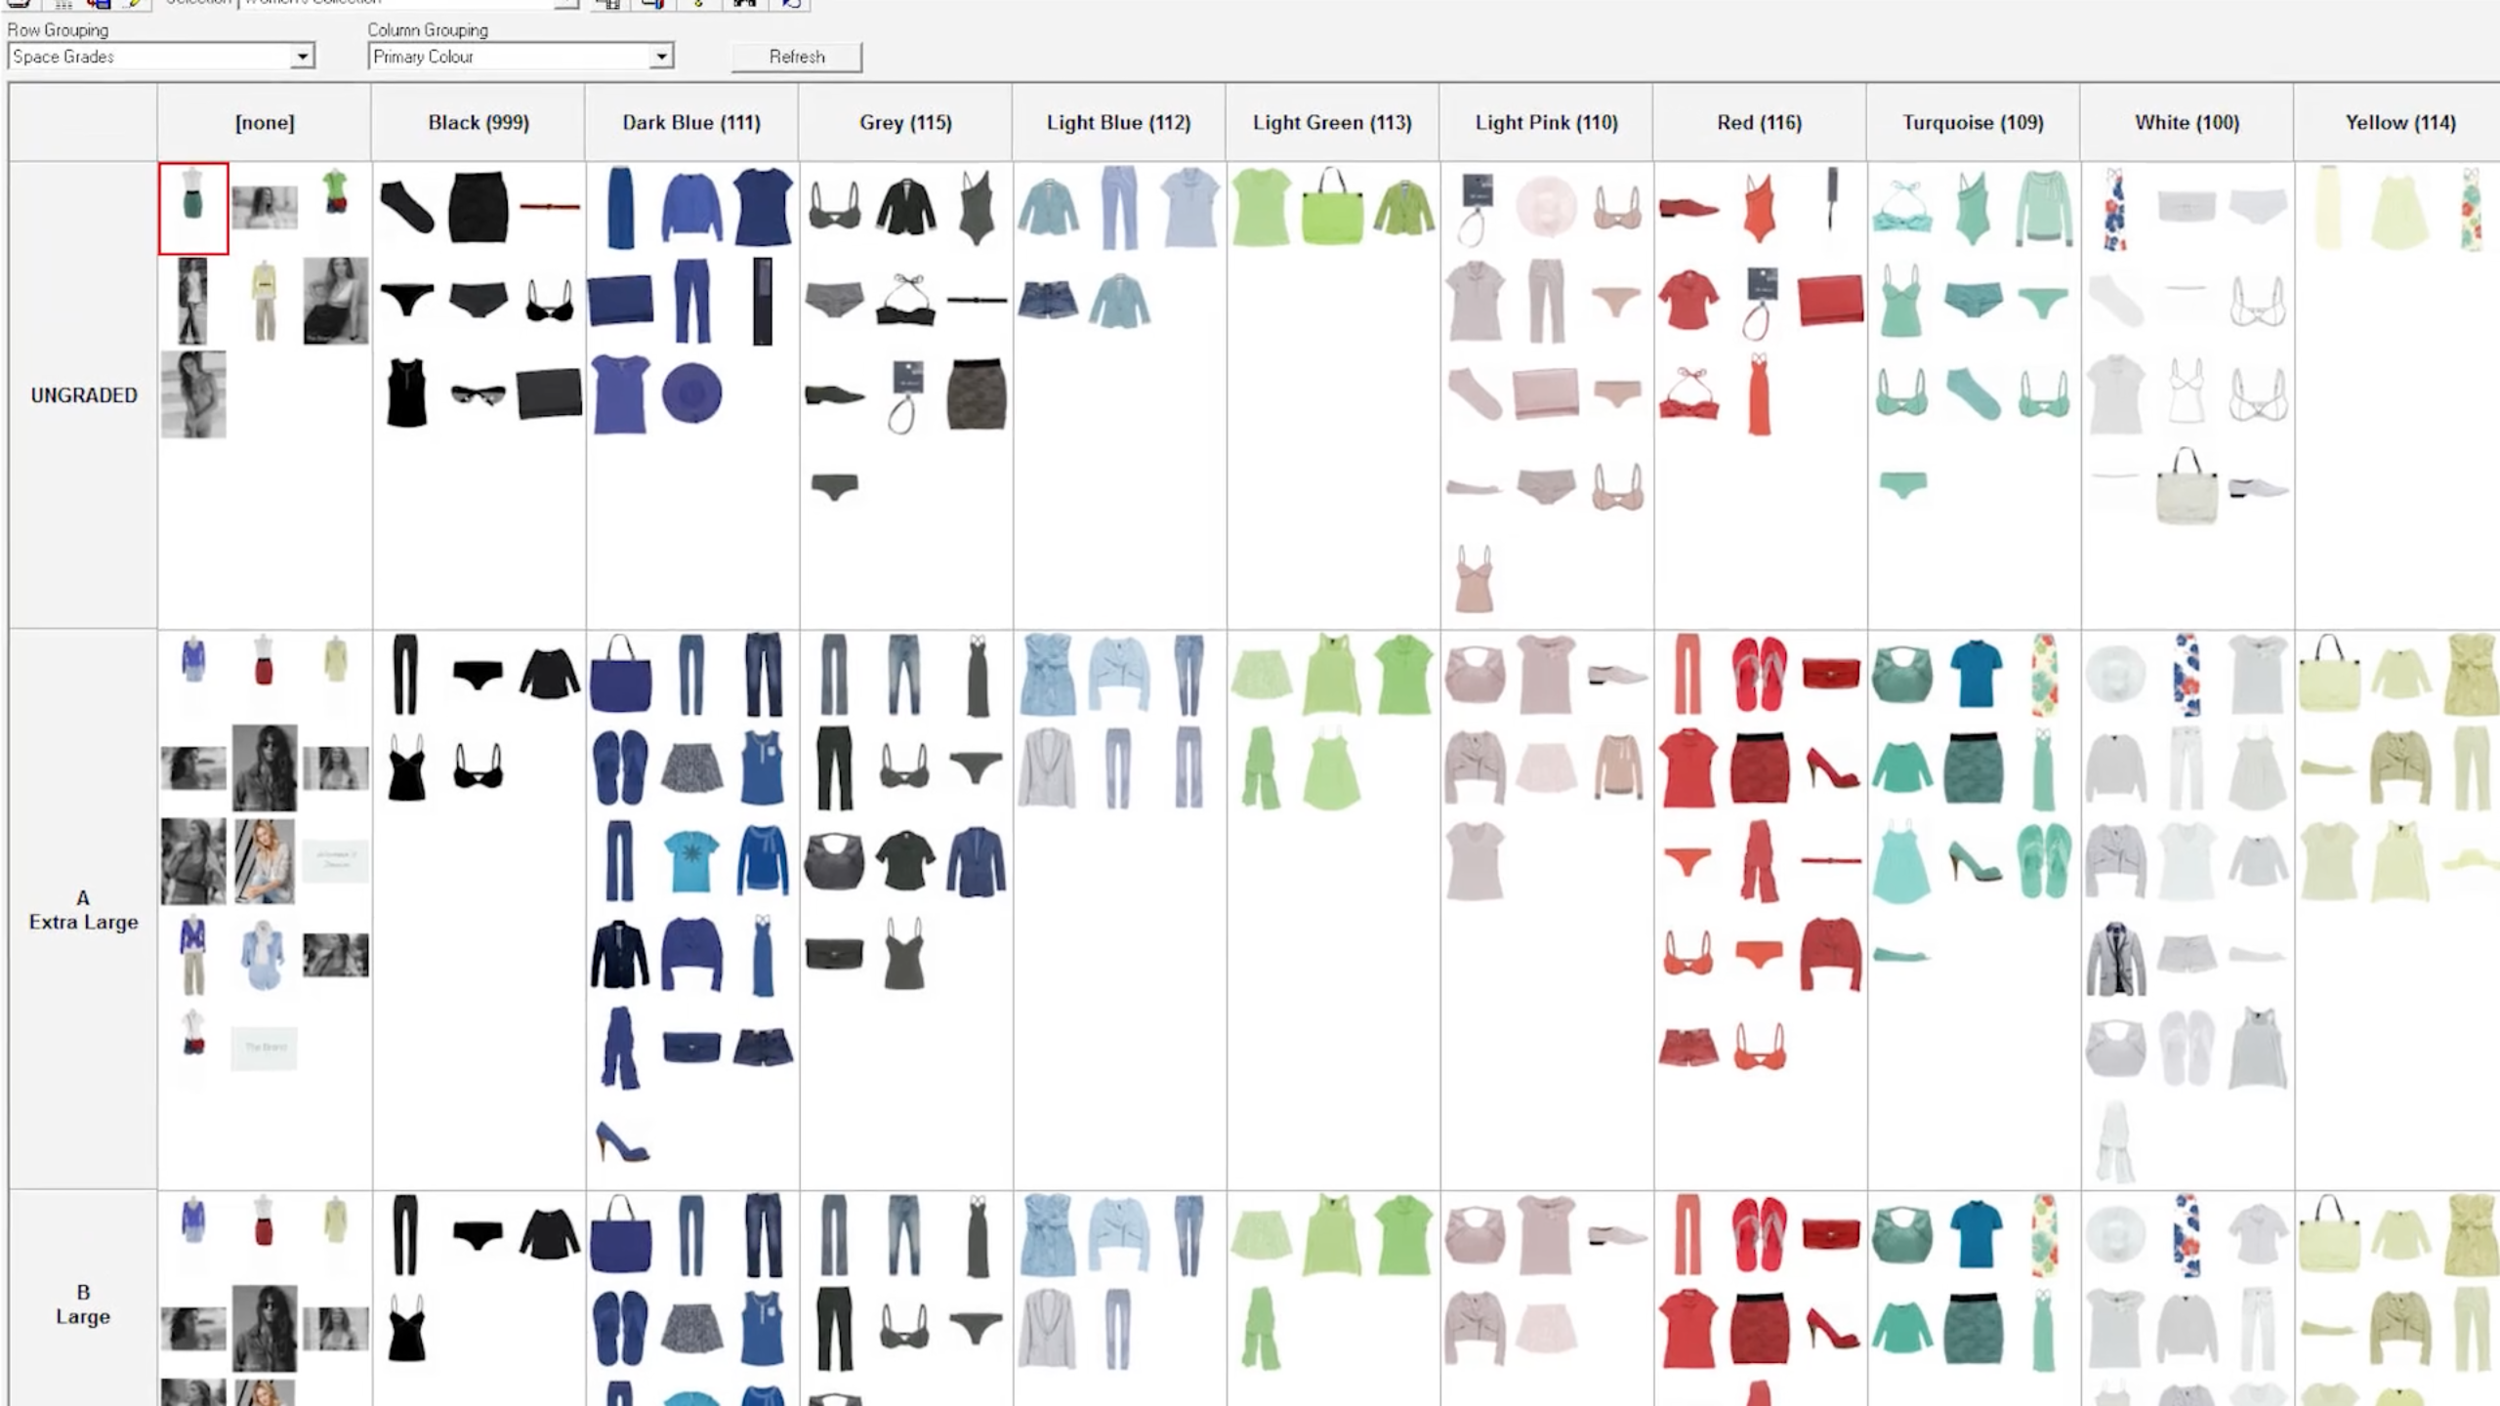 Having a visual overview of your range allows you to sort and balance a collection in the most effective way possible - with almost unlimited possibilities of sorting by various criteria